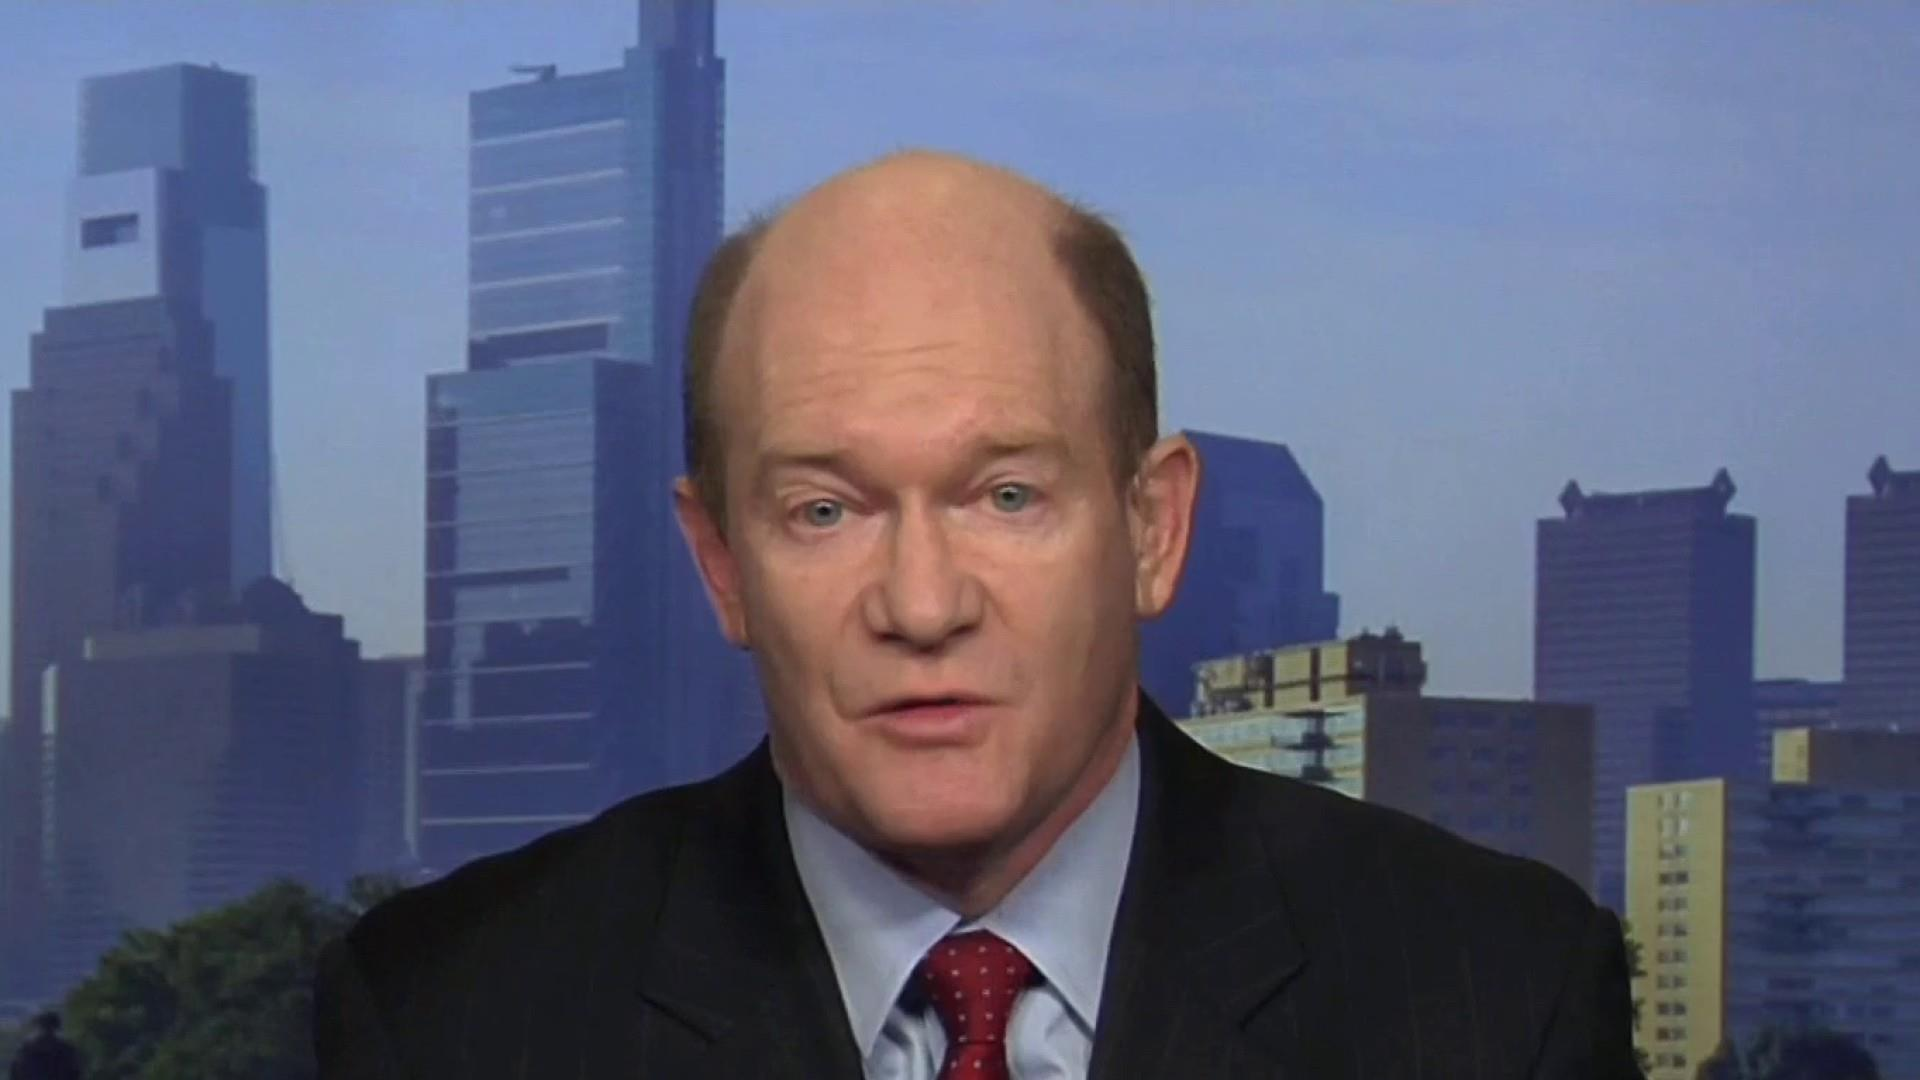 Sen. Coons: Indictment suggests campaign, Russia connection